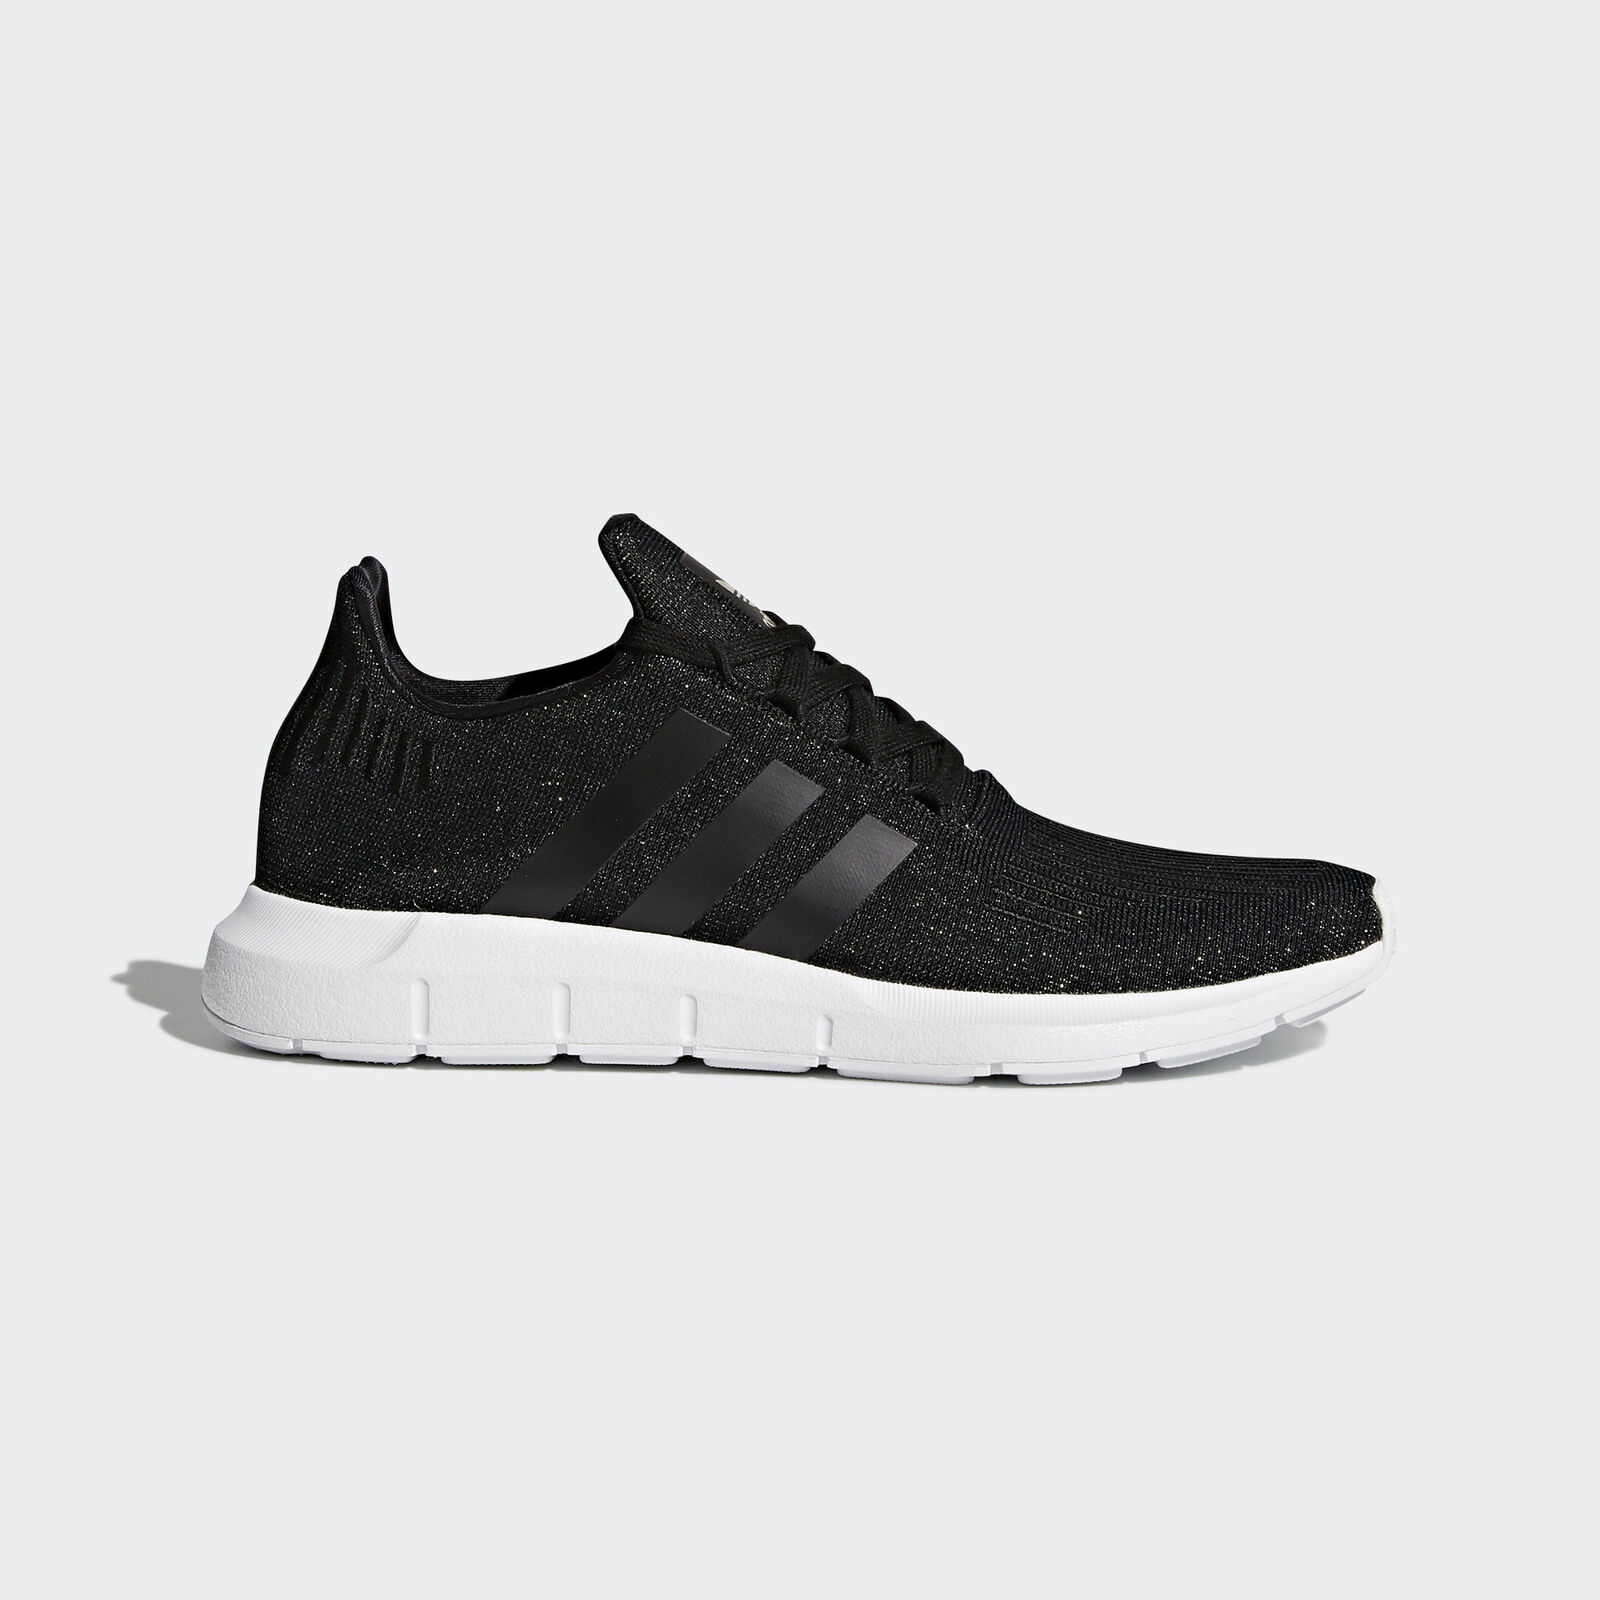 Adidas Originals Swift Run W Price reduction Women Casual Shoes Black/White